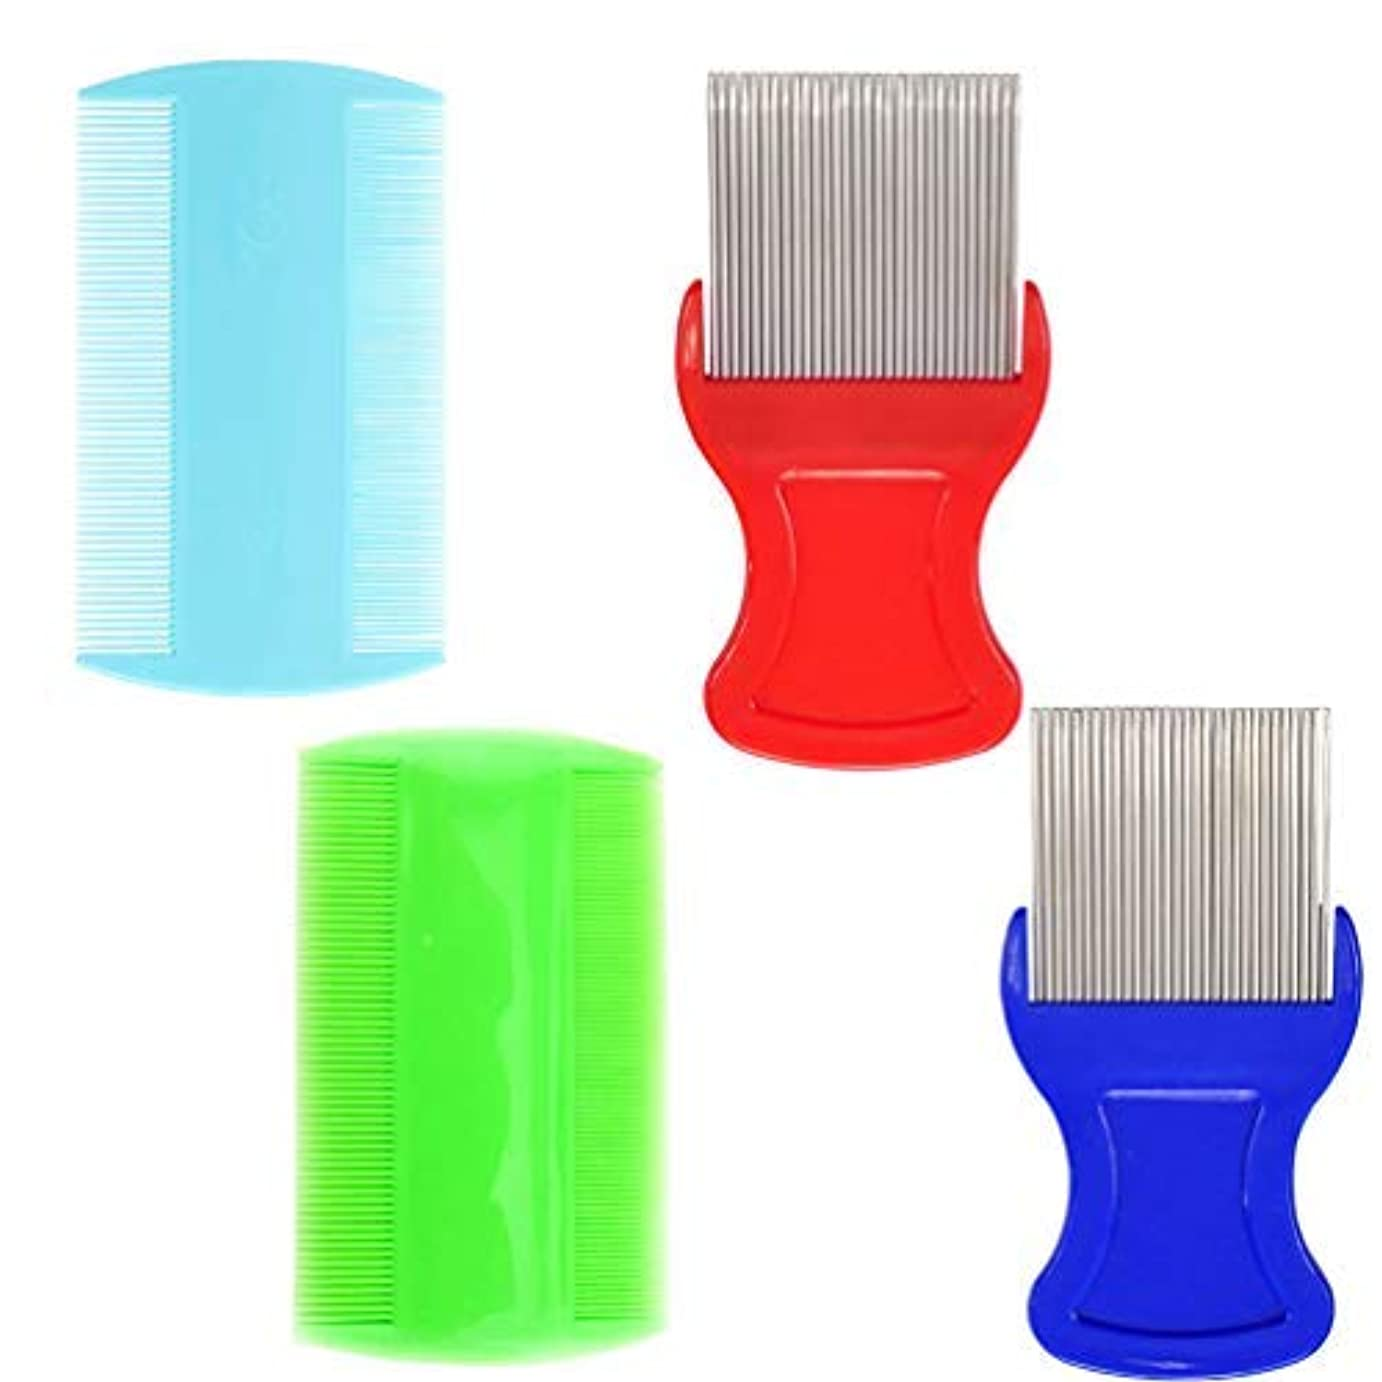 Hair Comb,Fine Tooth Comb,Removing Dandruff Flakes [並行輸入品]